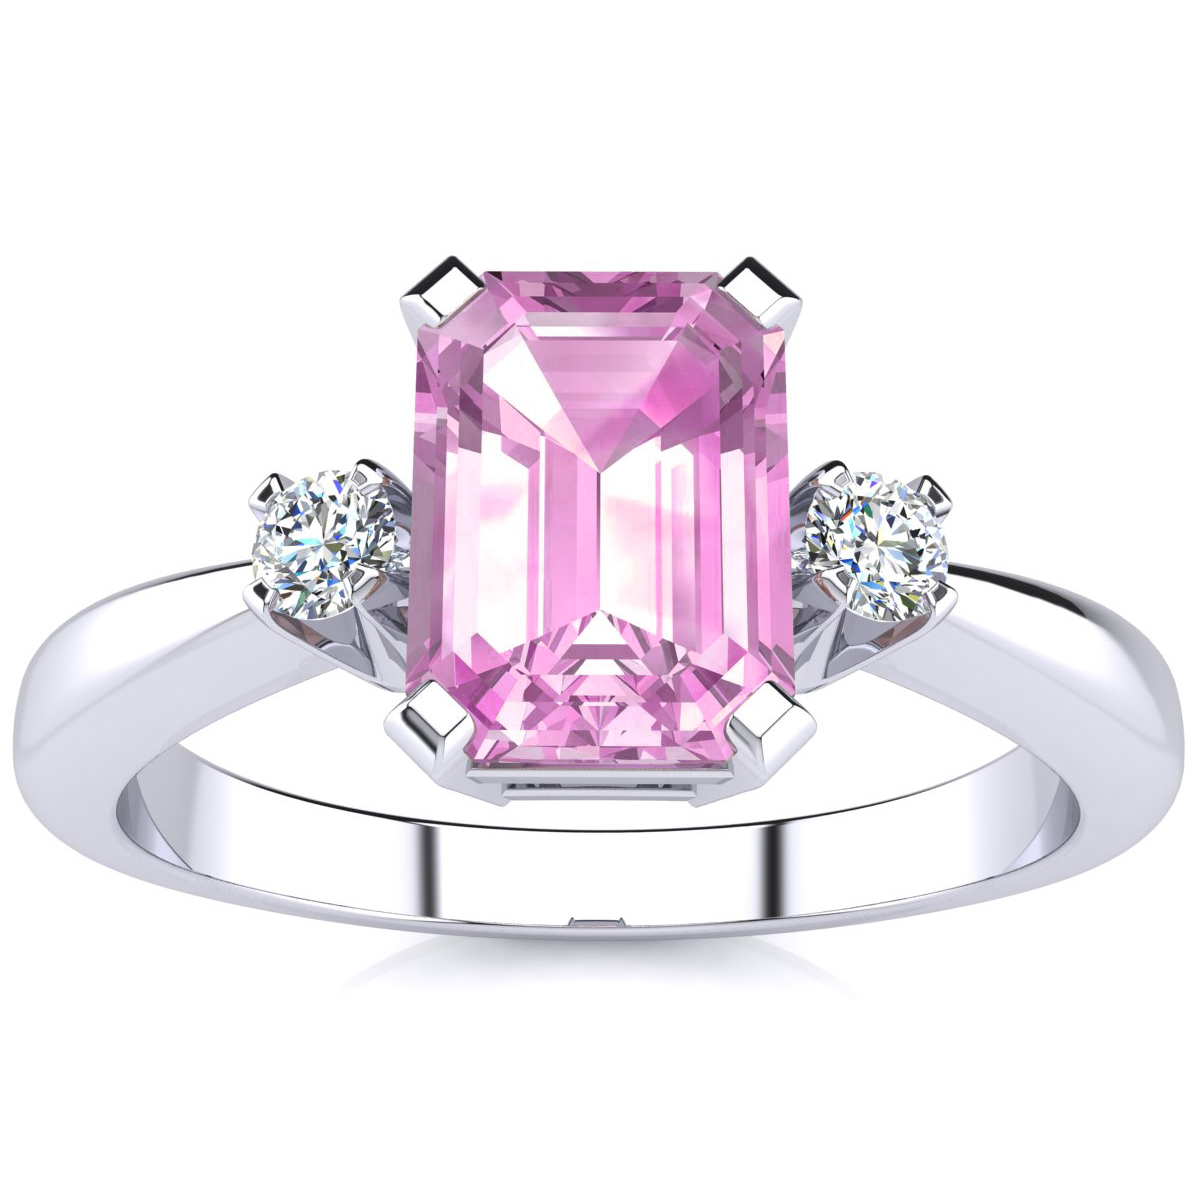 1ct Emerald Cut Pink Topaz and Diamond Ring Crafted In Solid 14K ...